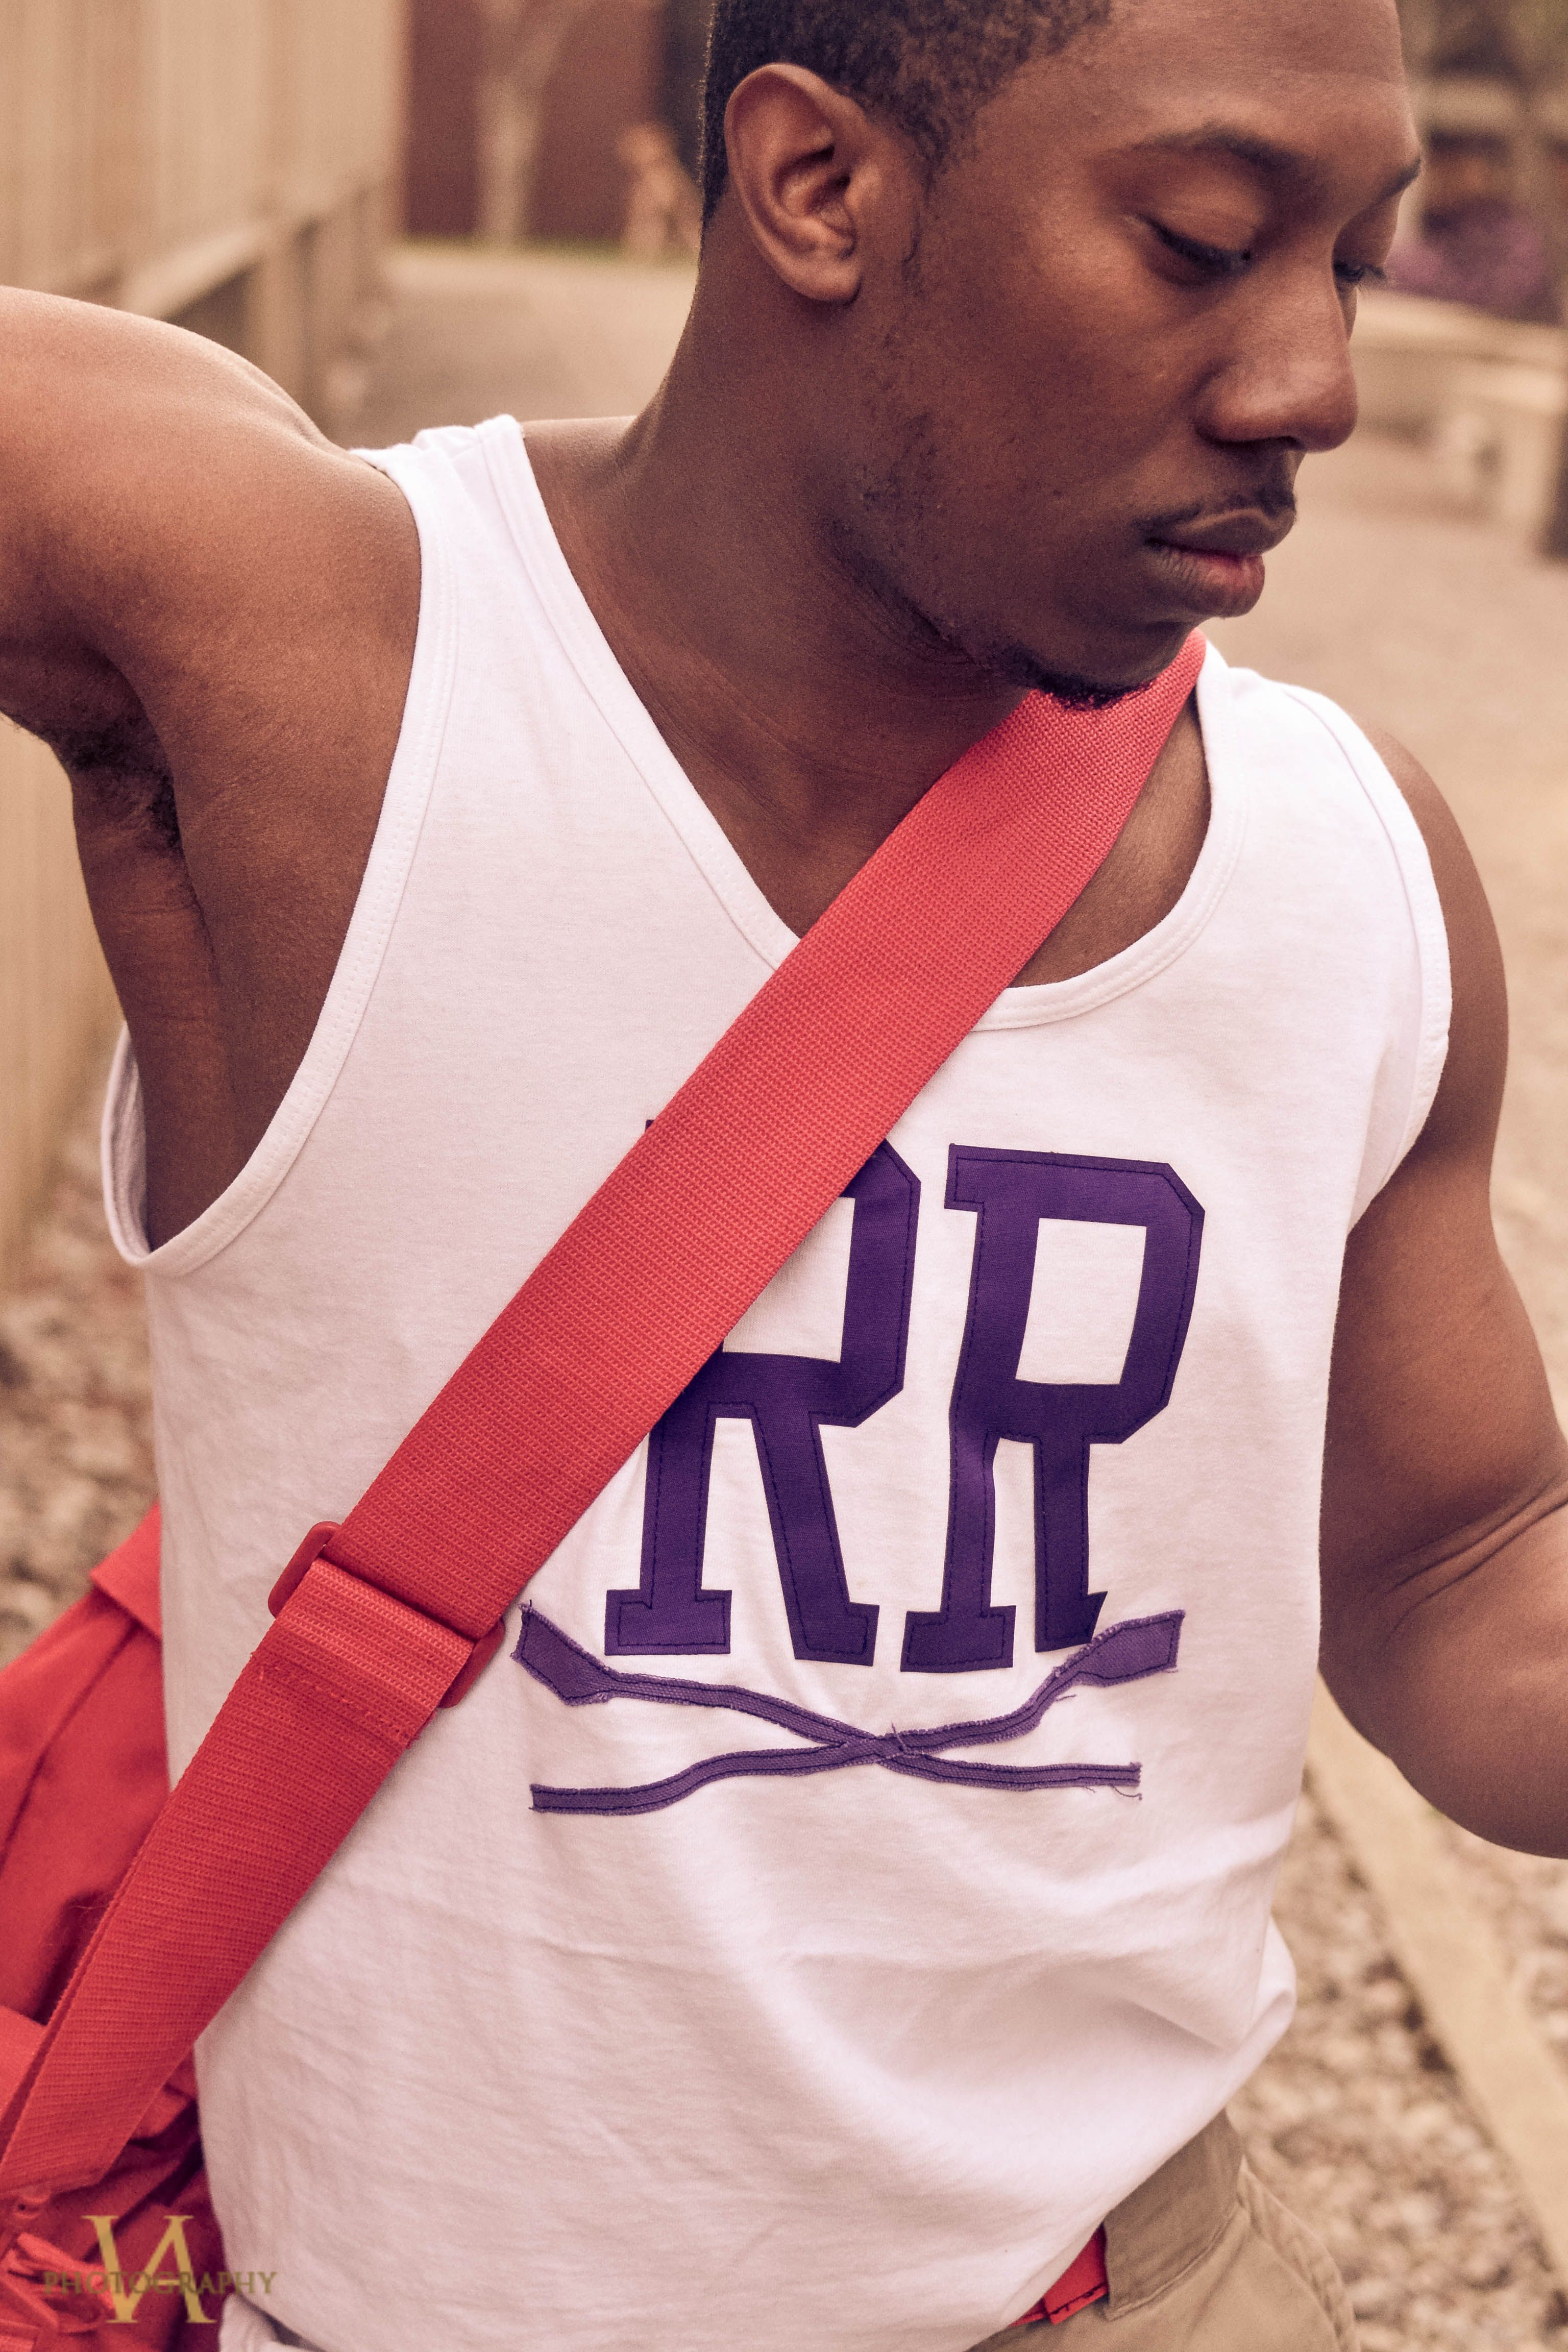 Rowing Match tank white and purple Lifestyle brands, Match